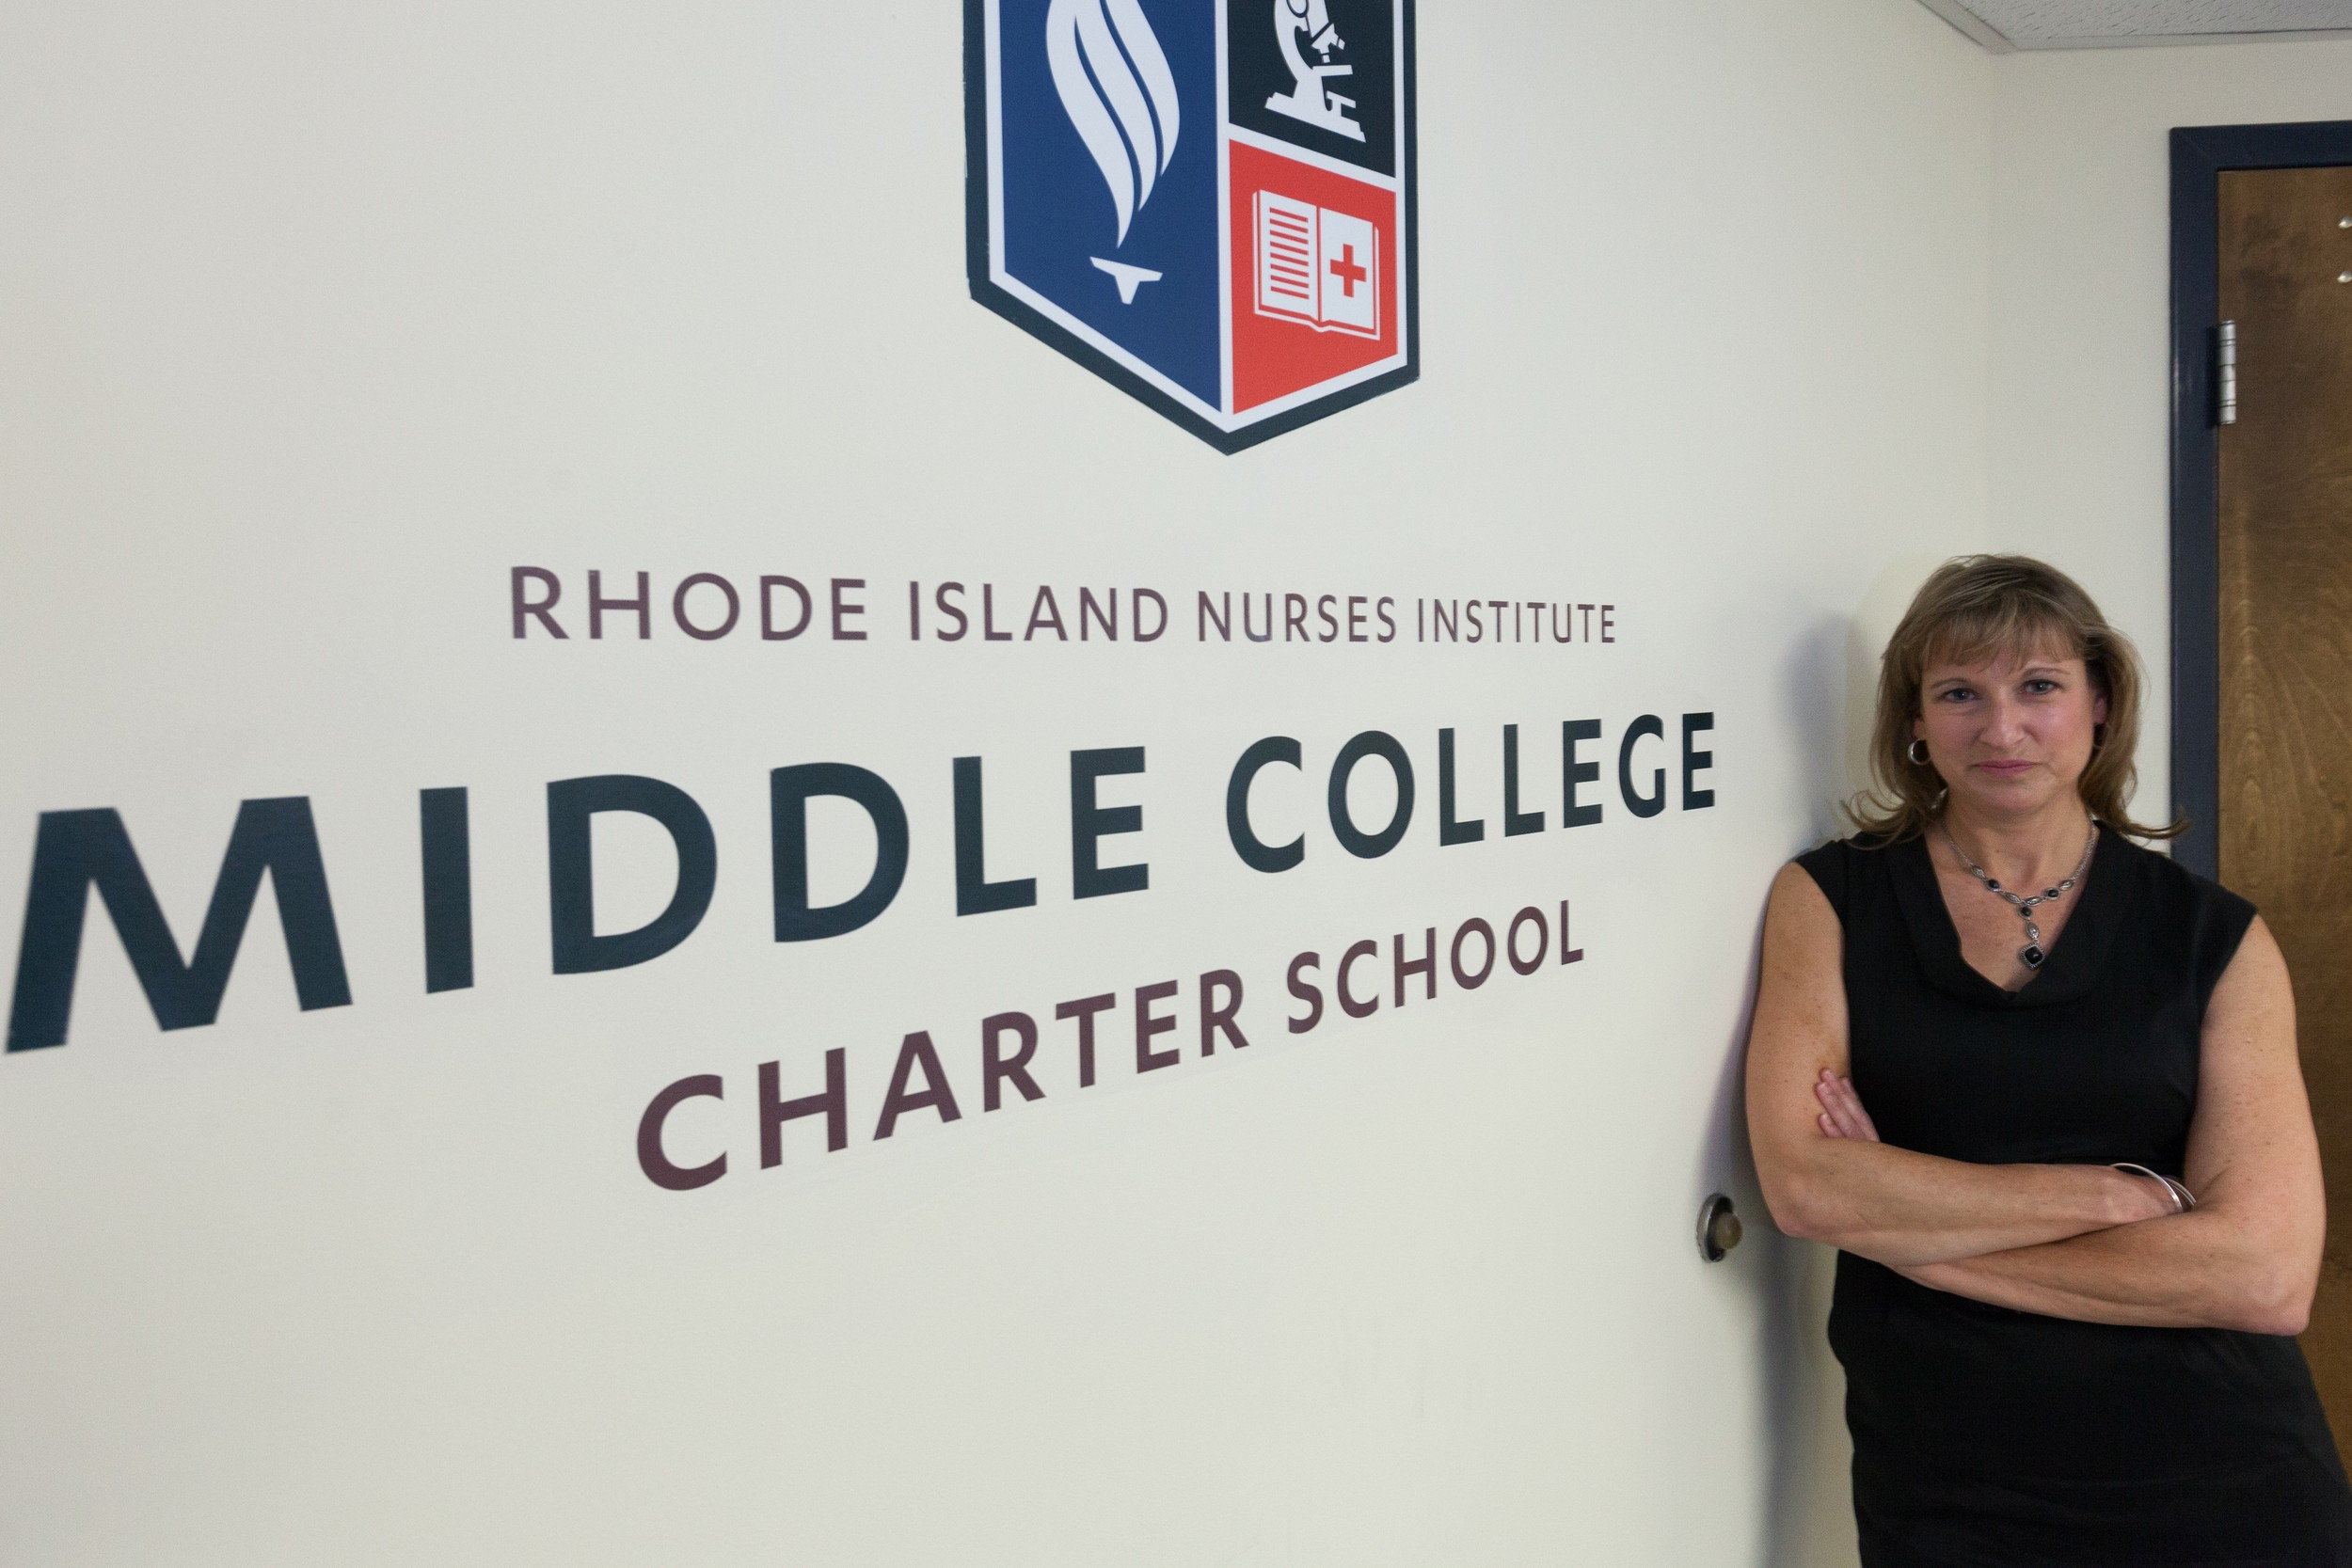 Pamela McCue, CEO of the R.I. Nurses Institute Middle College Charter School, leads an innovative public charter school with 272 students, with the goal of creating an educational pathway to a career in nursing.